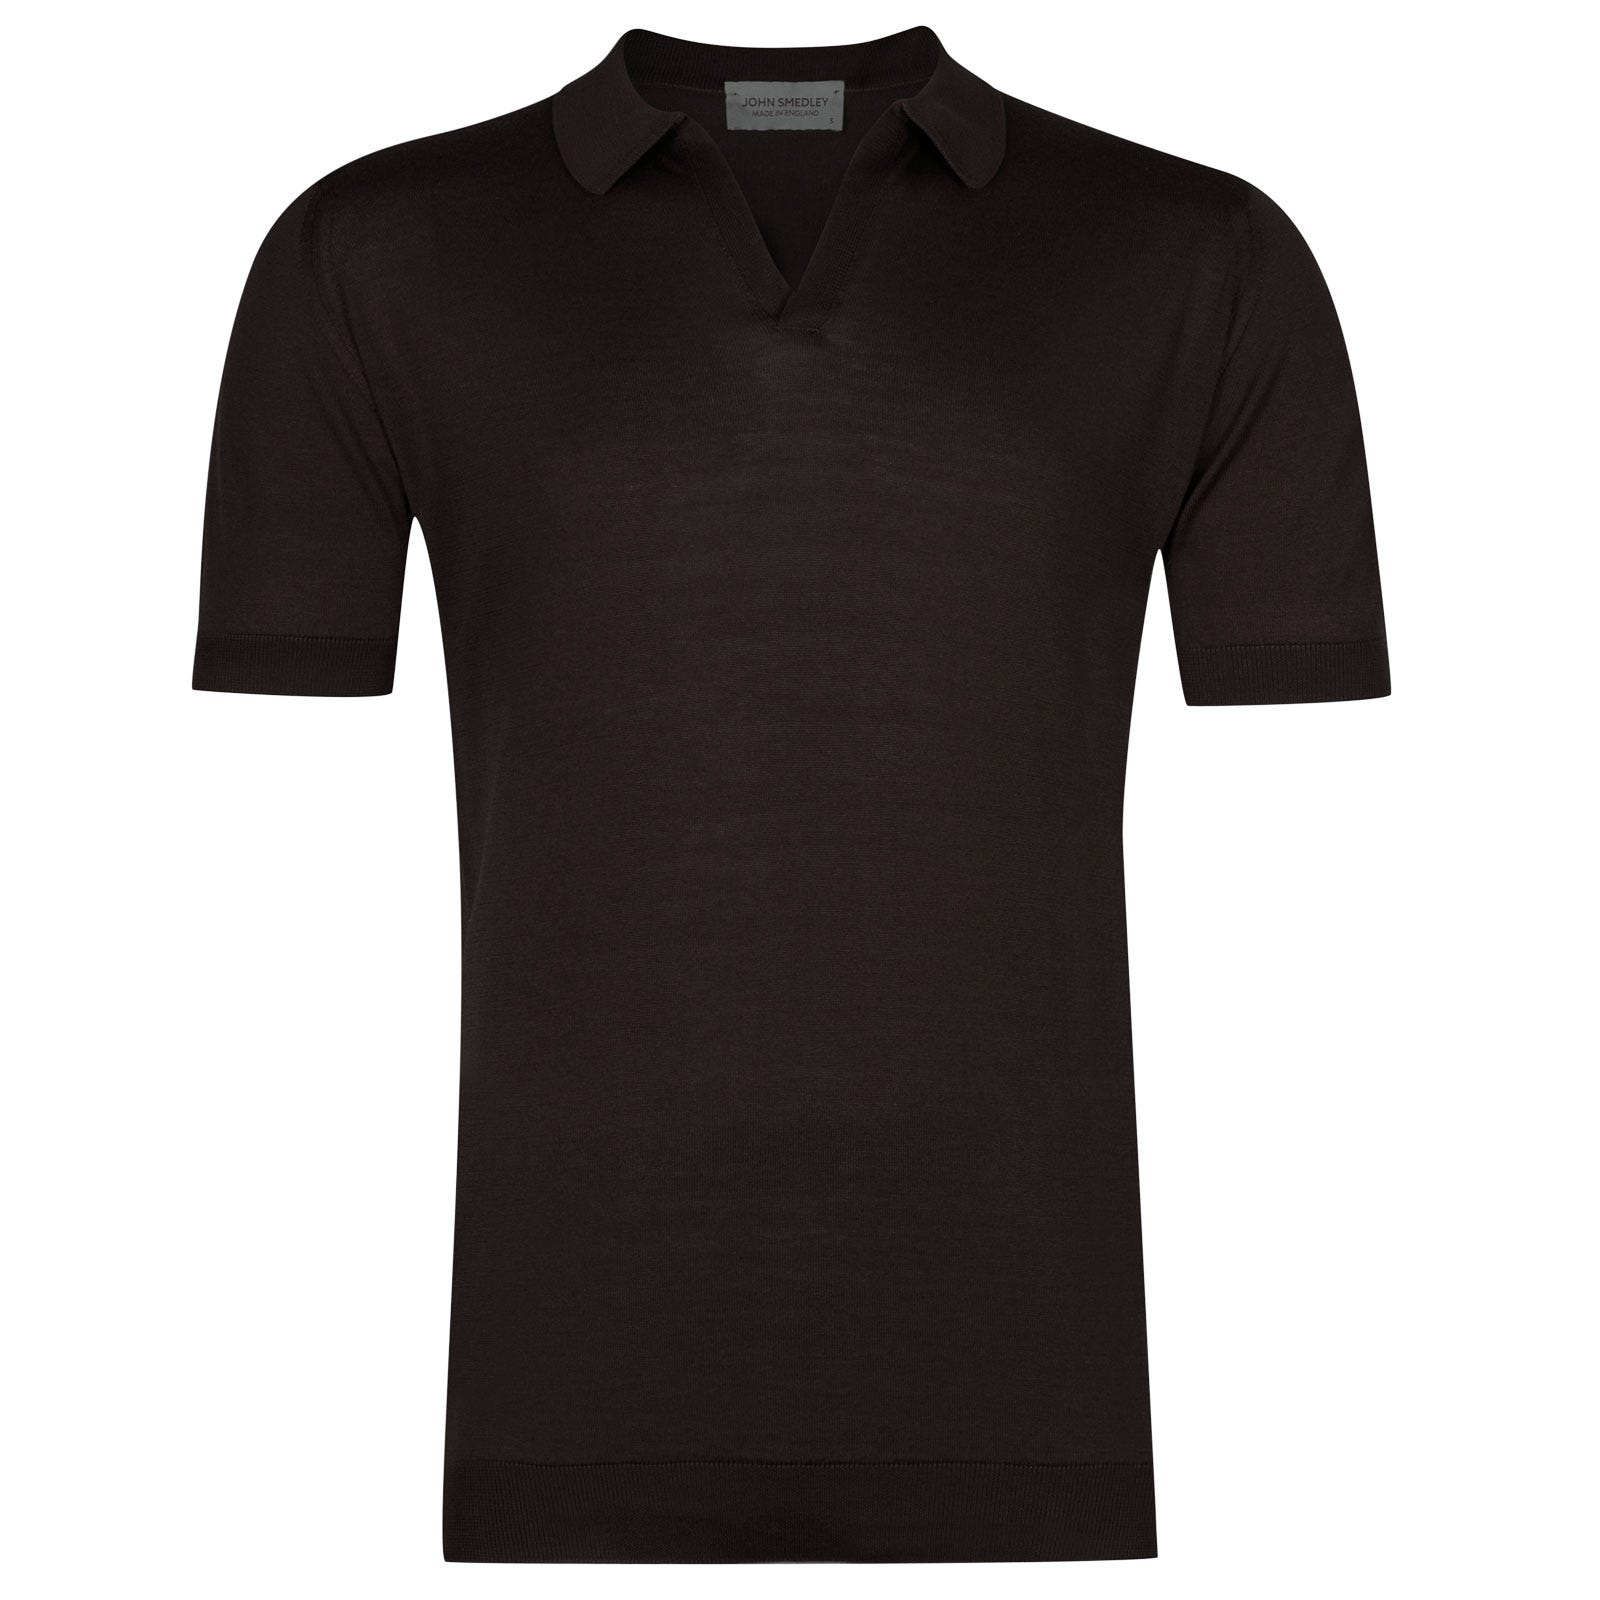 John Smedley Noah Sea Island Cotton Shirt in Dark Leather-XL